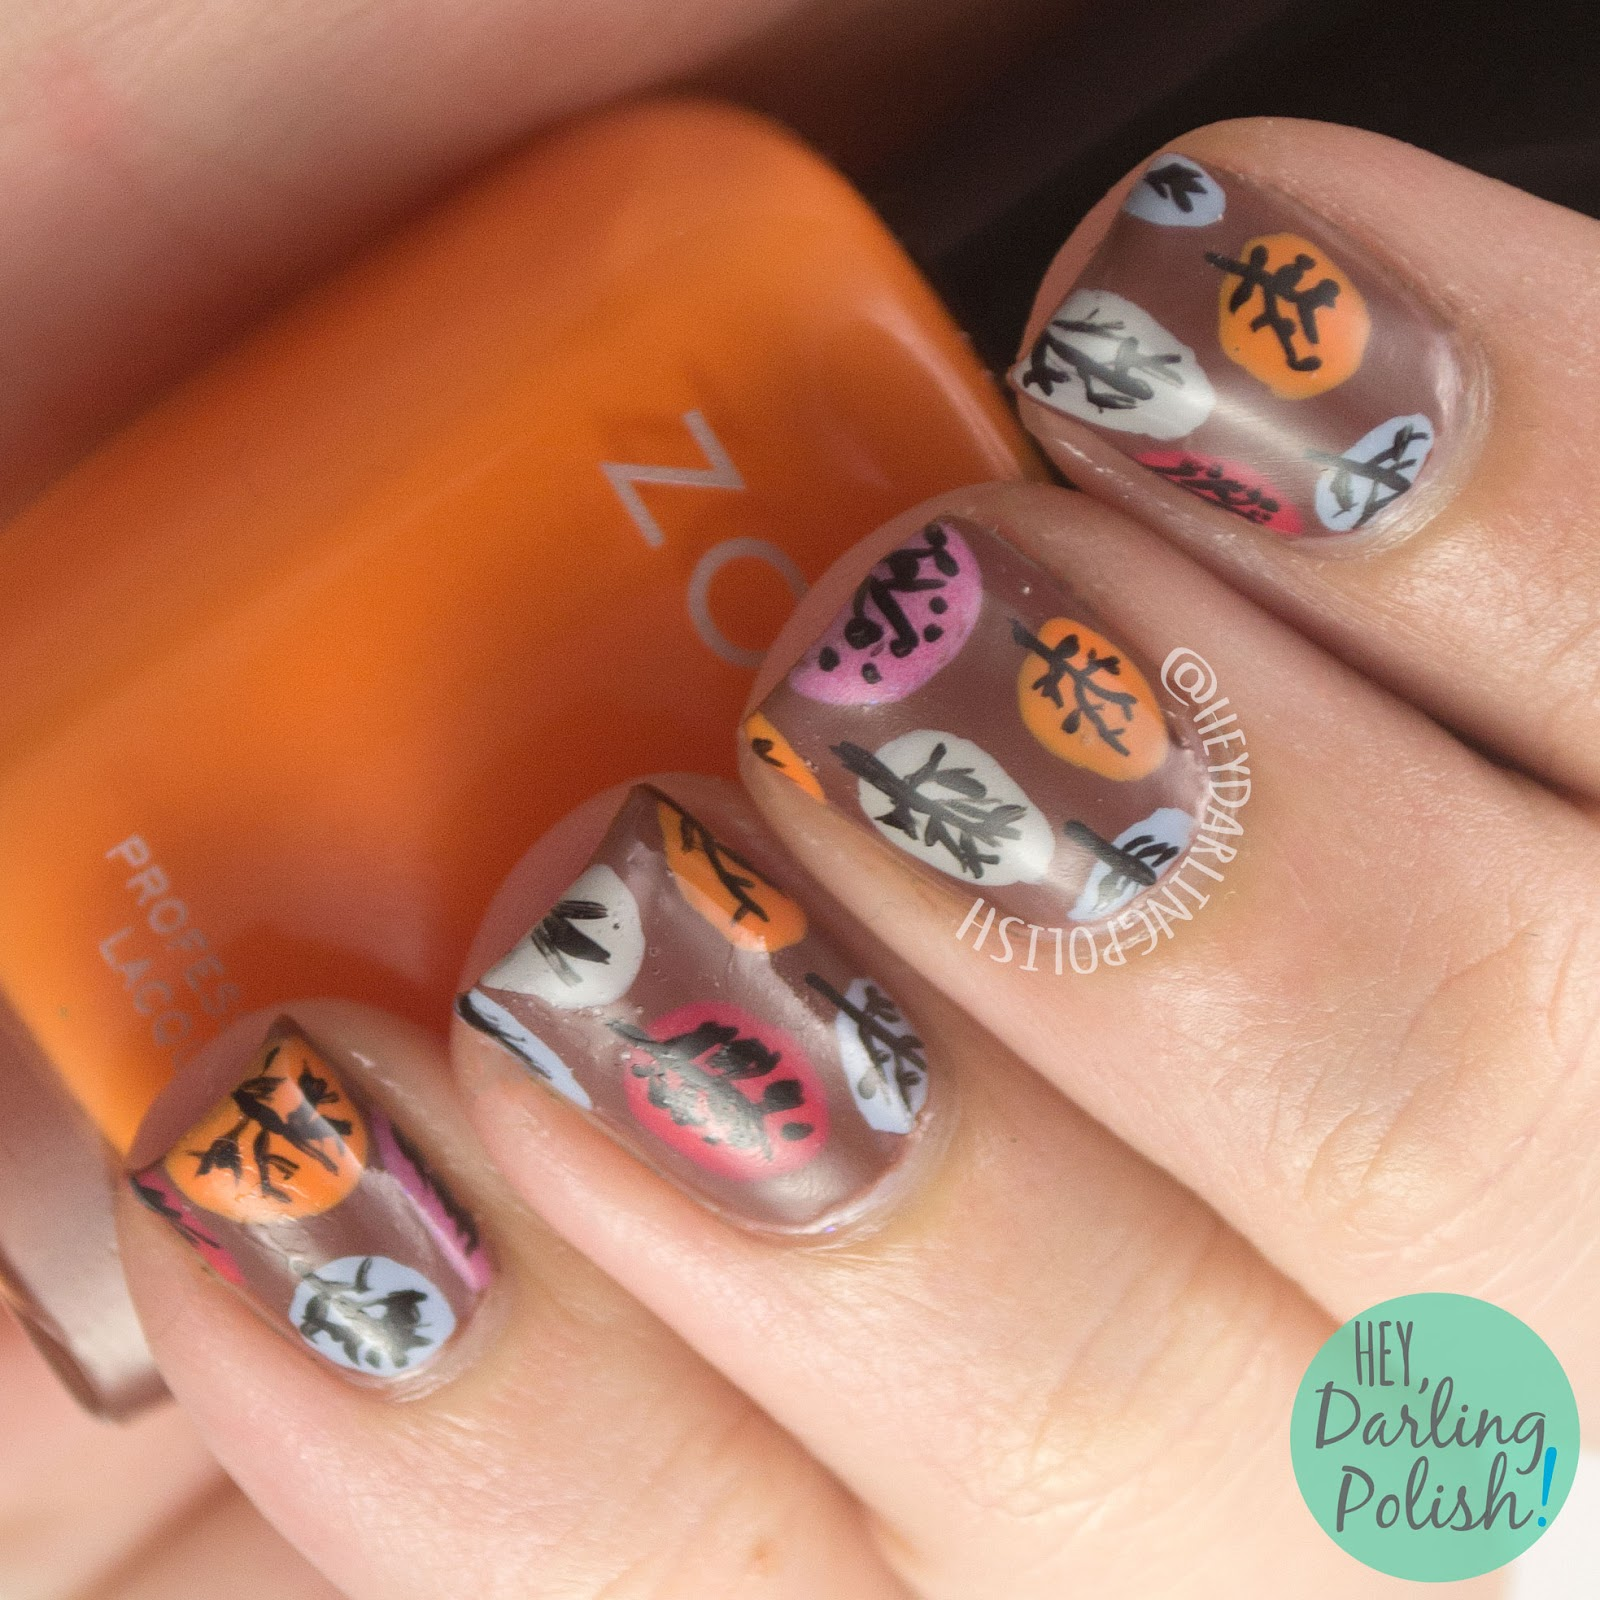 nails, nail art, nail polish, autumn, fall, autumn nail art, fall nail art, hey darling polish, theme buffet, trees